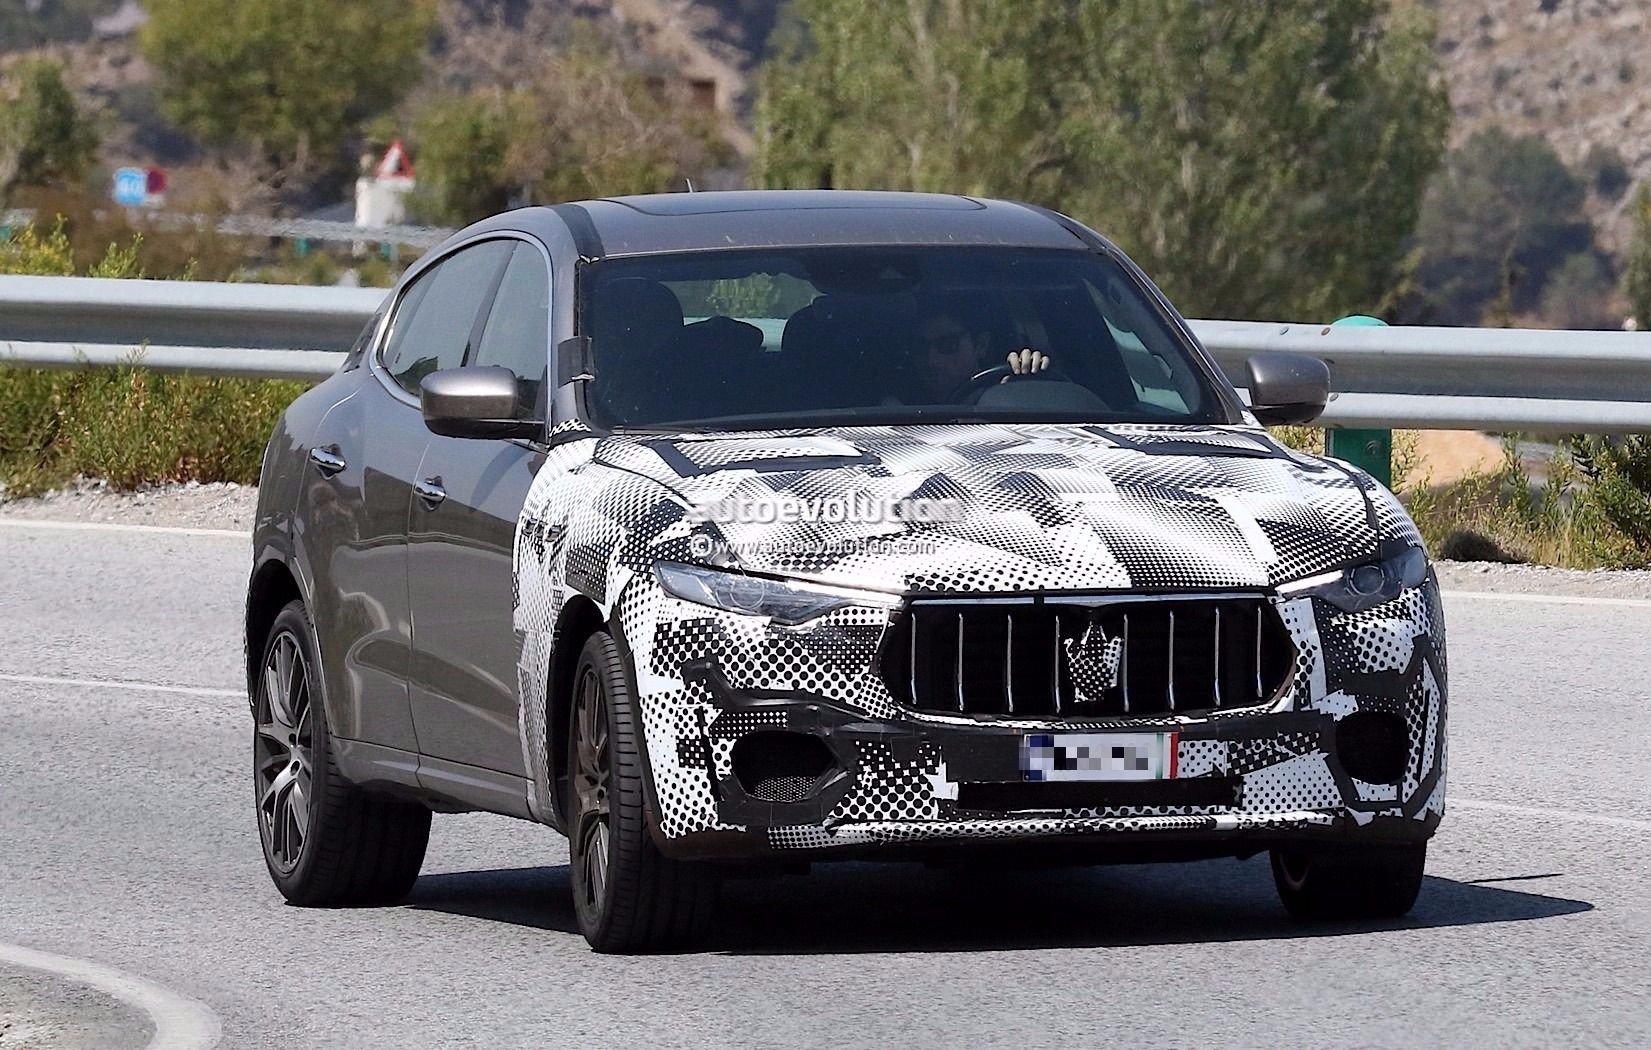 Spyshots 2018 Maserati Levante Gts With V8 Power Tests